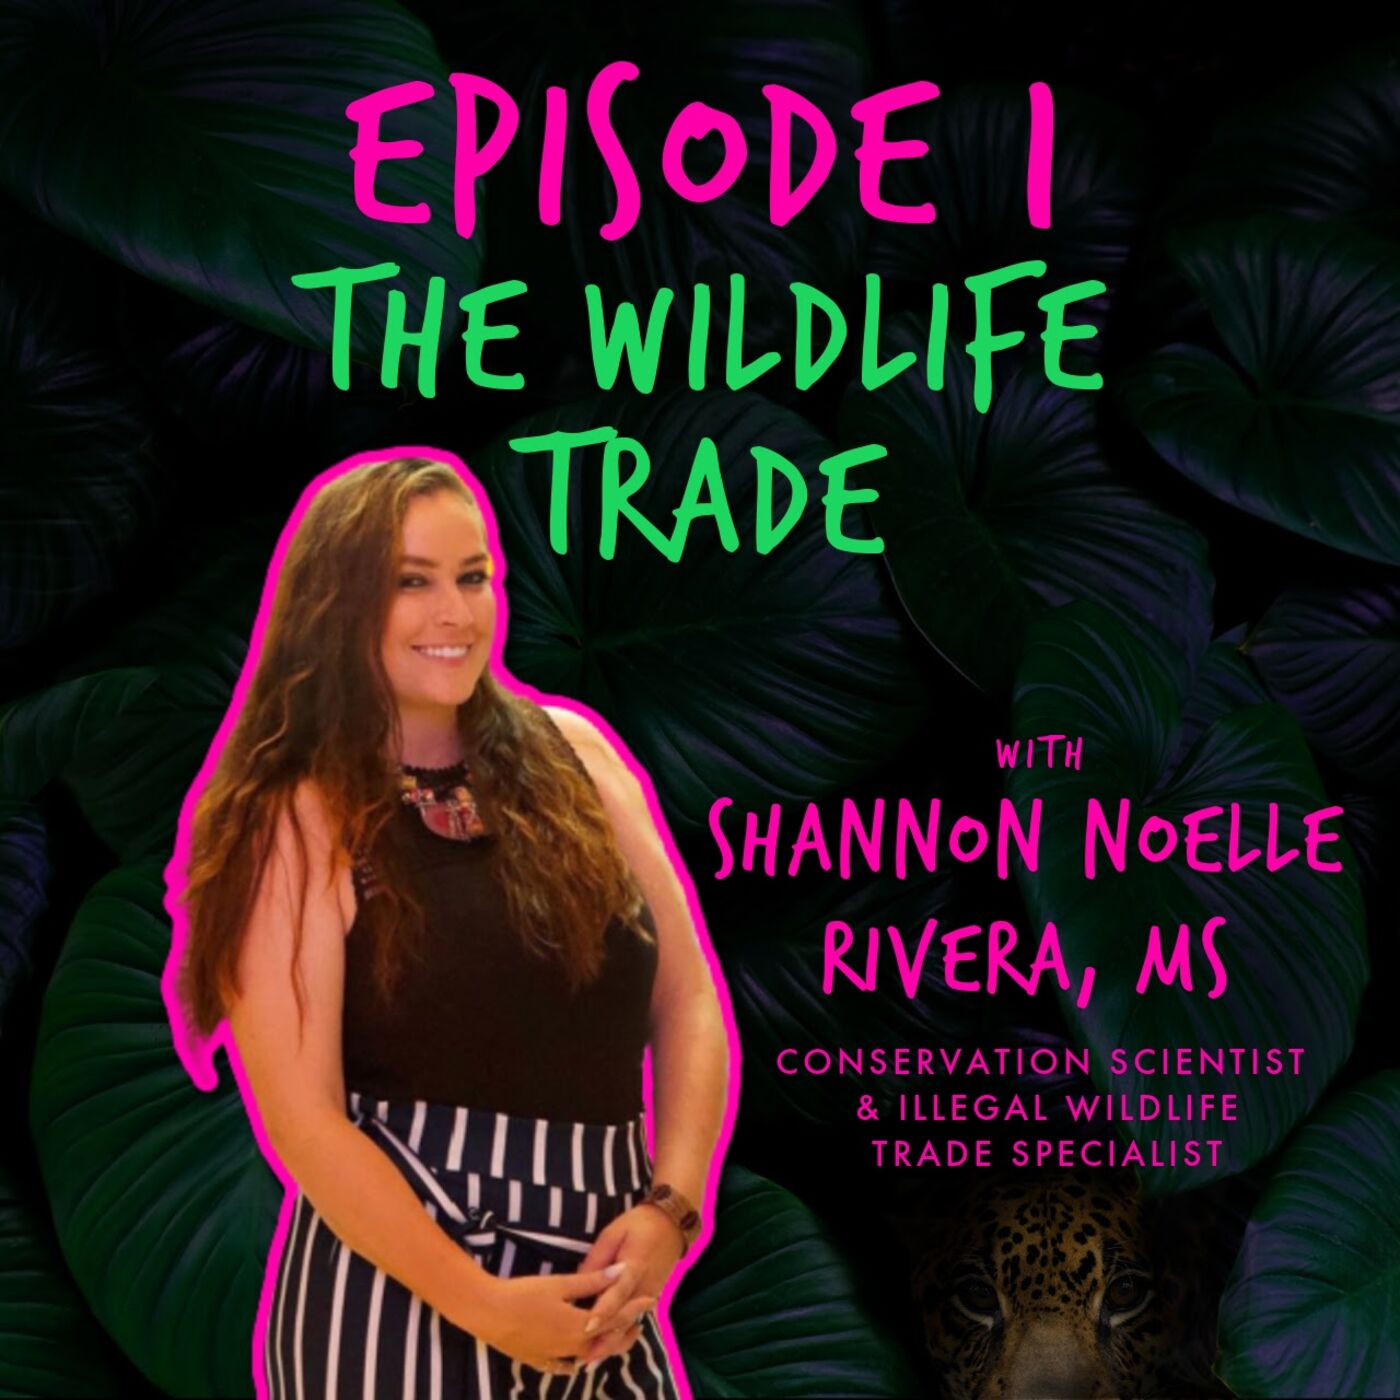 THE WILDLIFE TRADE with SHANNON NOELLE RIVERA